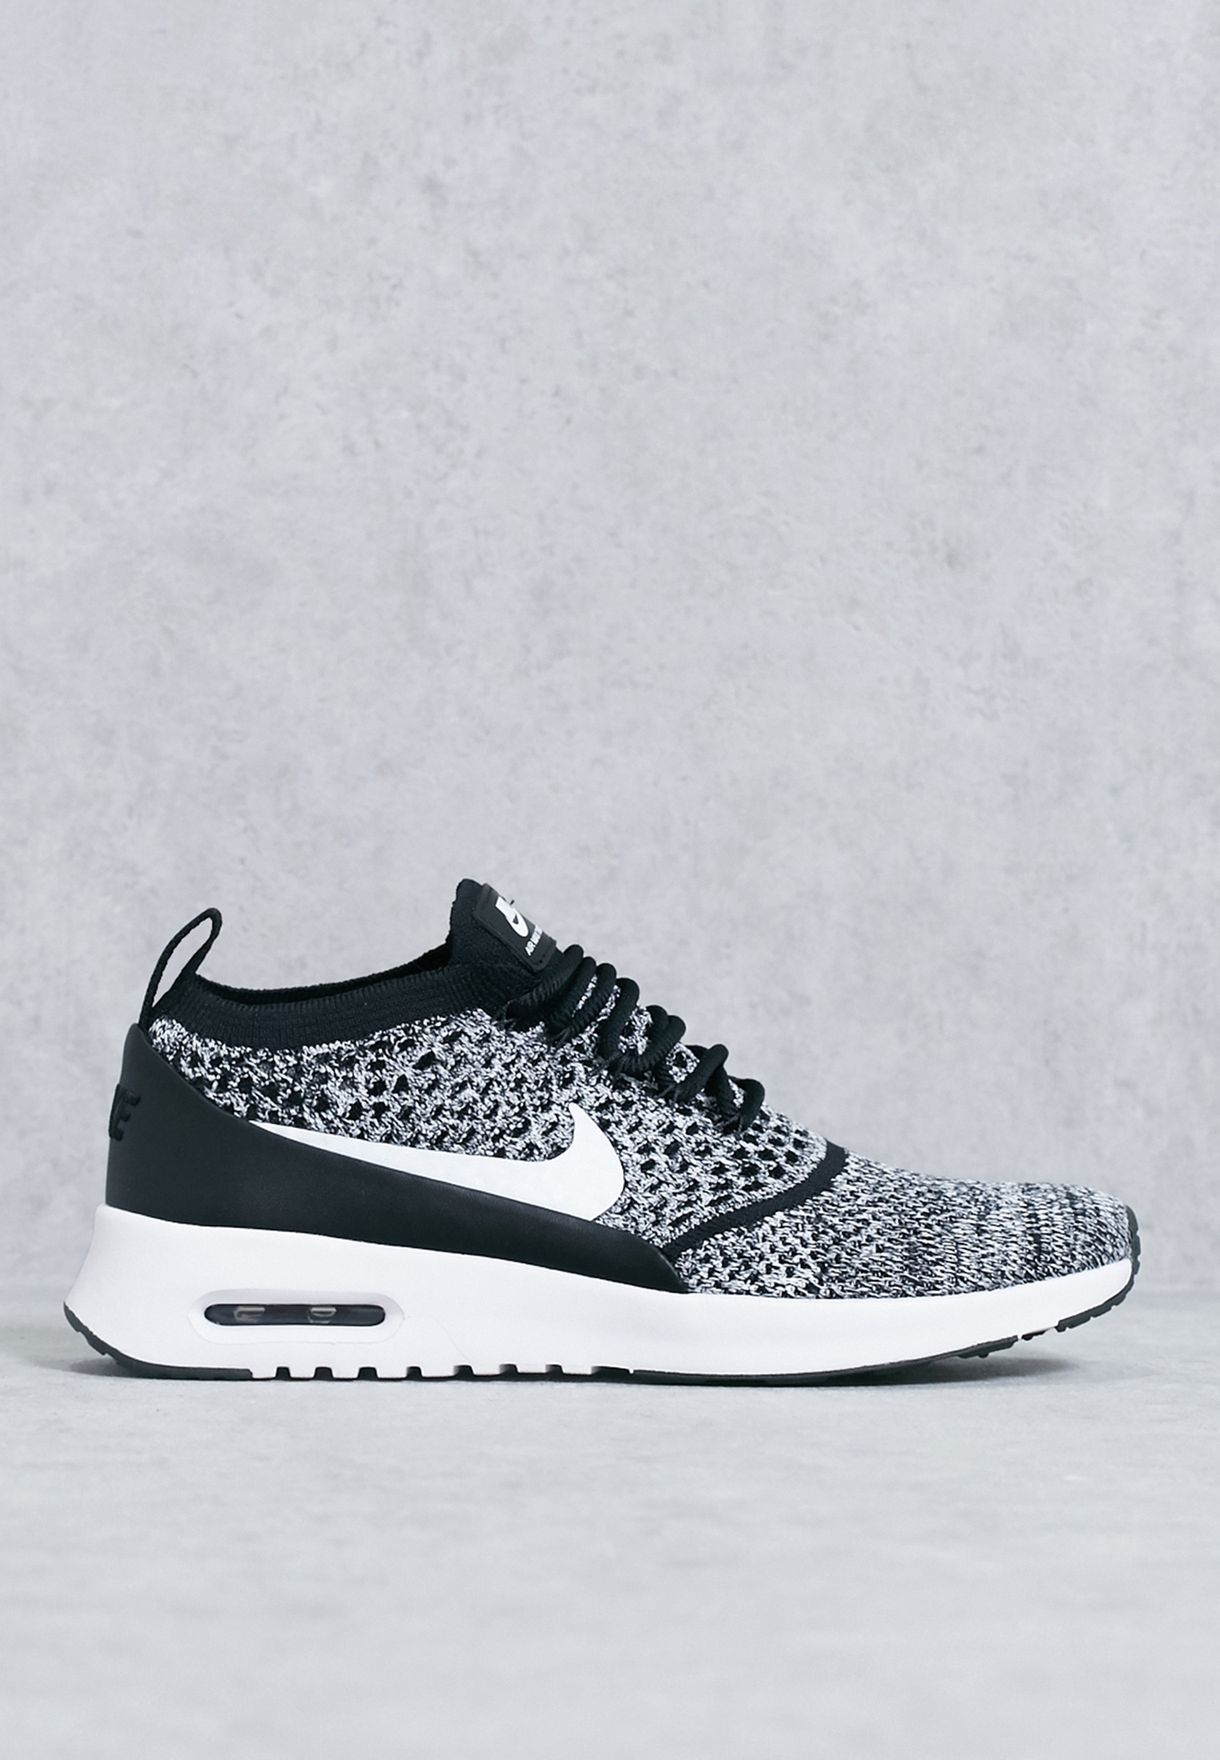 c3aa0812a0b7f Shop Nike monochrome Air Max Thea Ultra Flyknit 881175-001 for Women ...